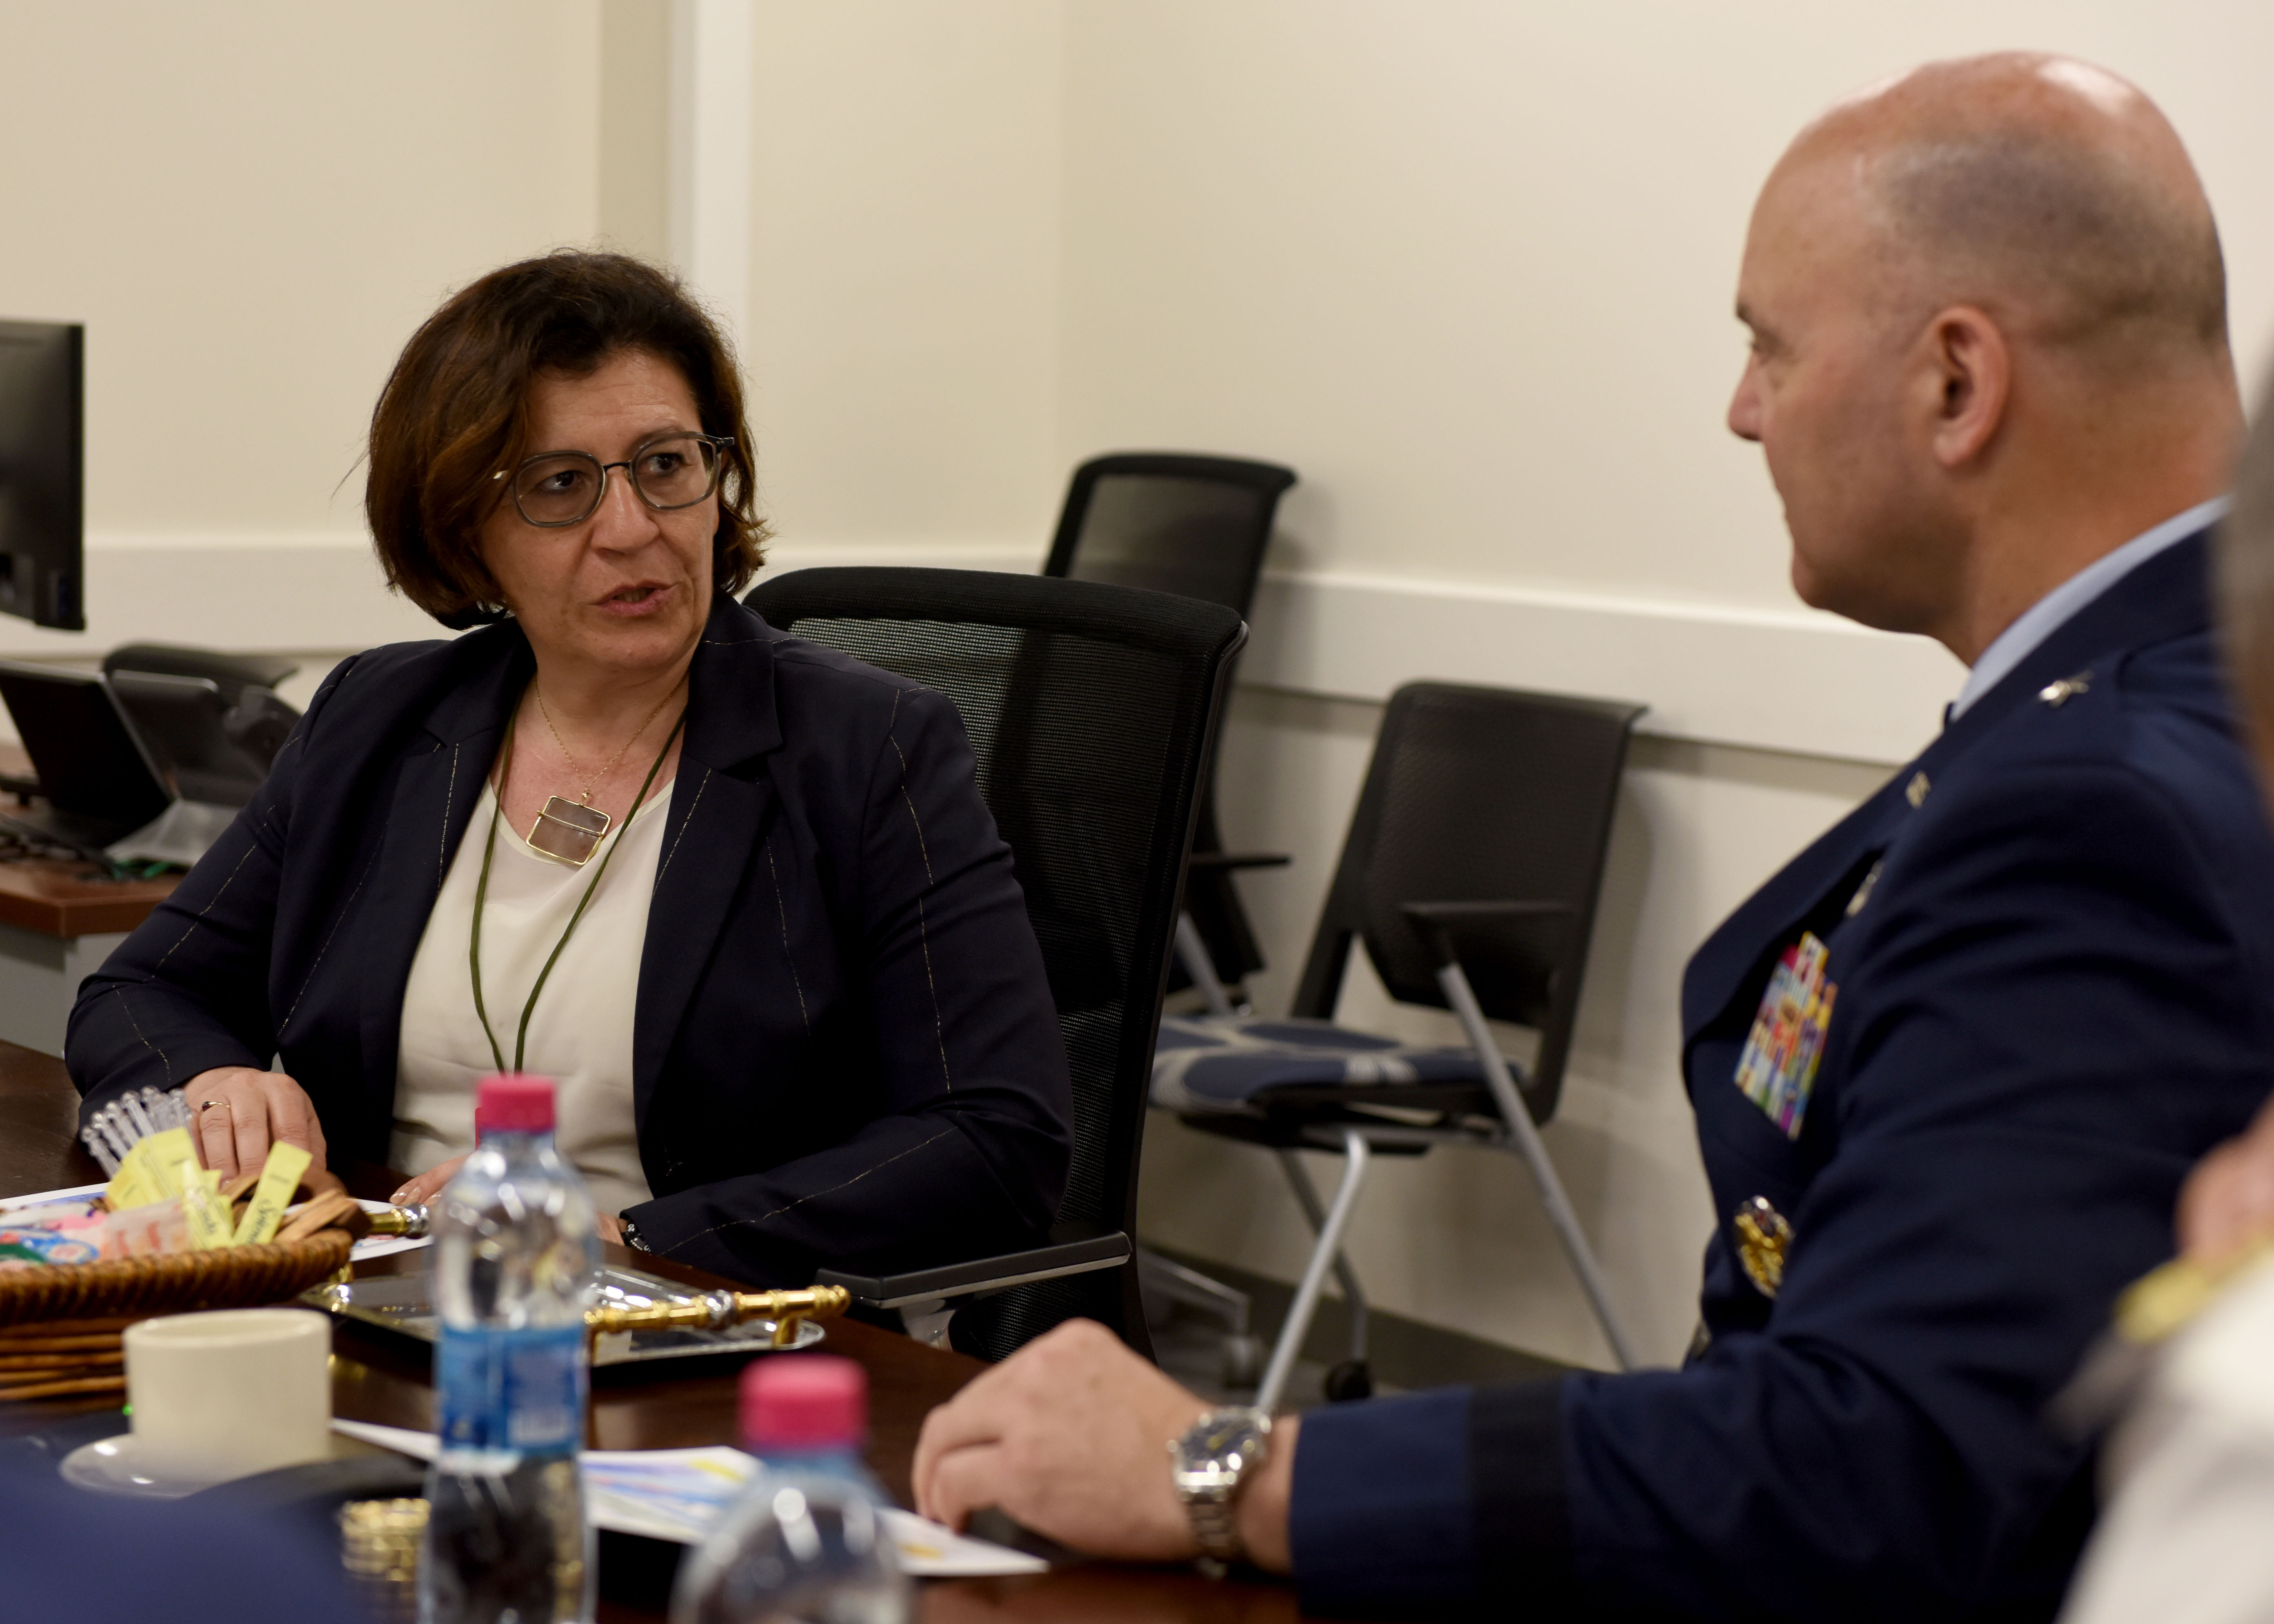 Elisabetta Trenta, Italian Minister of Defense, left, speaks to U.S. Air Force Brig. Gen. James R. Kriesel, deputy commanding general of Combined Joint Task Force-Horn of Africa (CJTF- HOA), to gain insight into the partnership between the two nations on the African continent during her visit to Camp Lemonnier, Djibouti, April 9, 2019. Trenta visited CJTF-HOA to gain insight on how U.S. forces operate in the combined joint operations area and to foster relations. (U.S. Air Force Photo by Staff Sgt. Franklin R. Ramos)